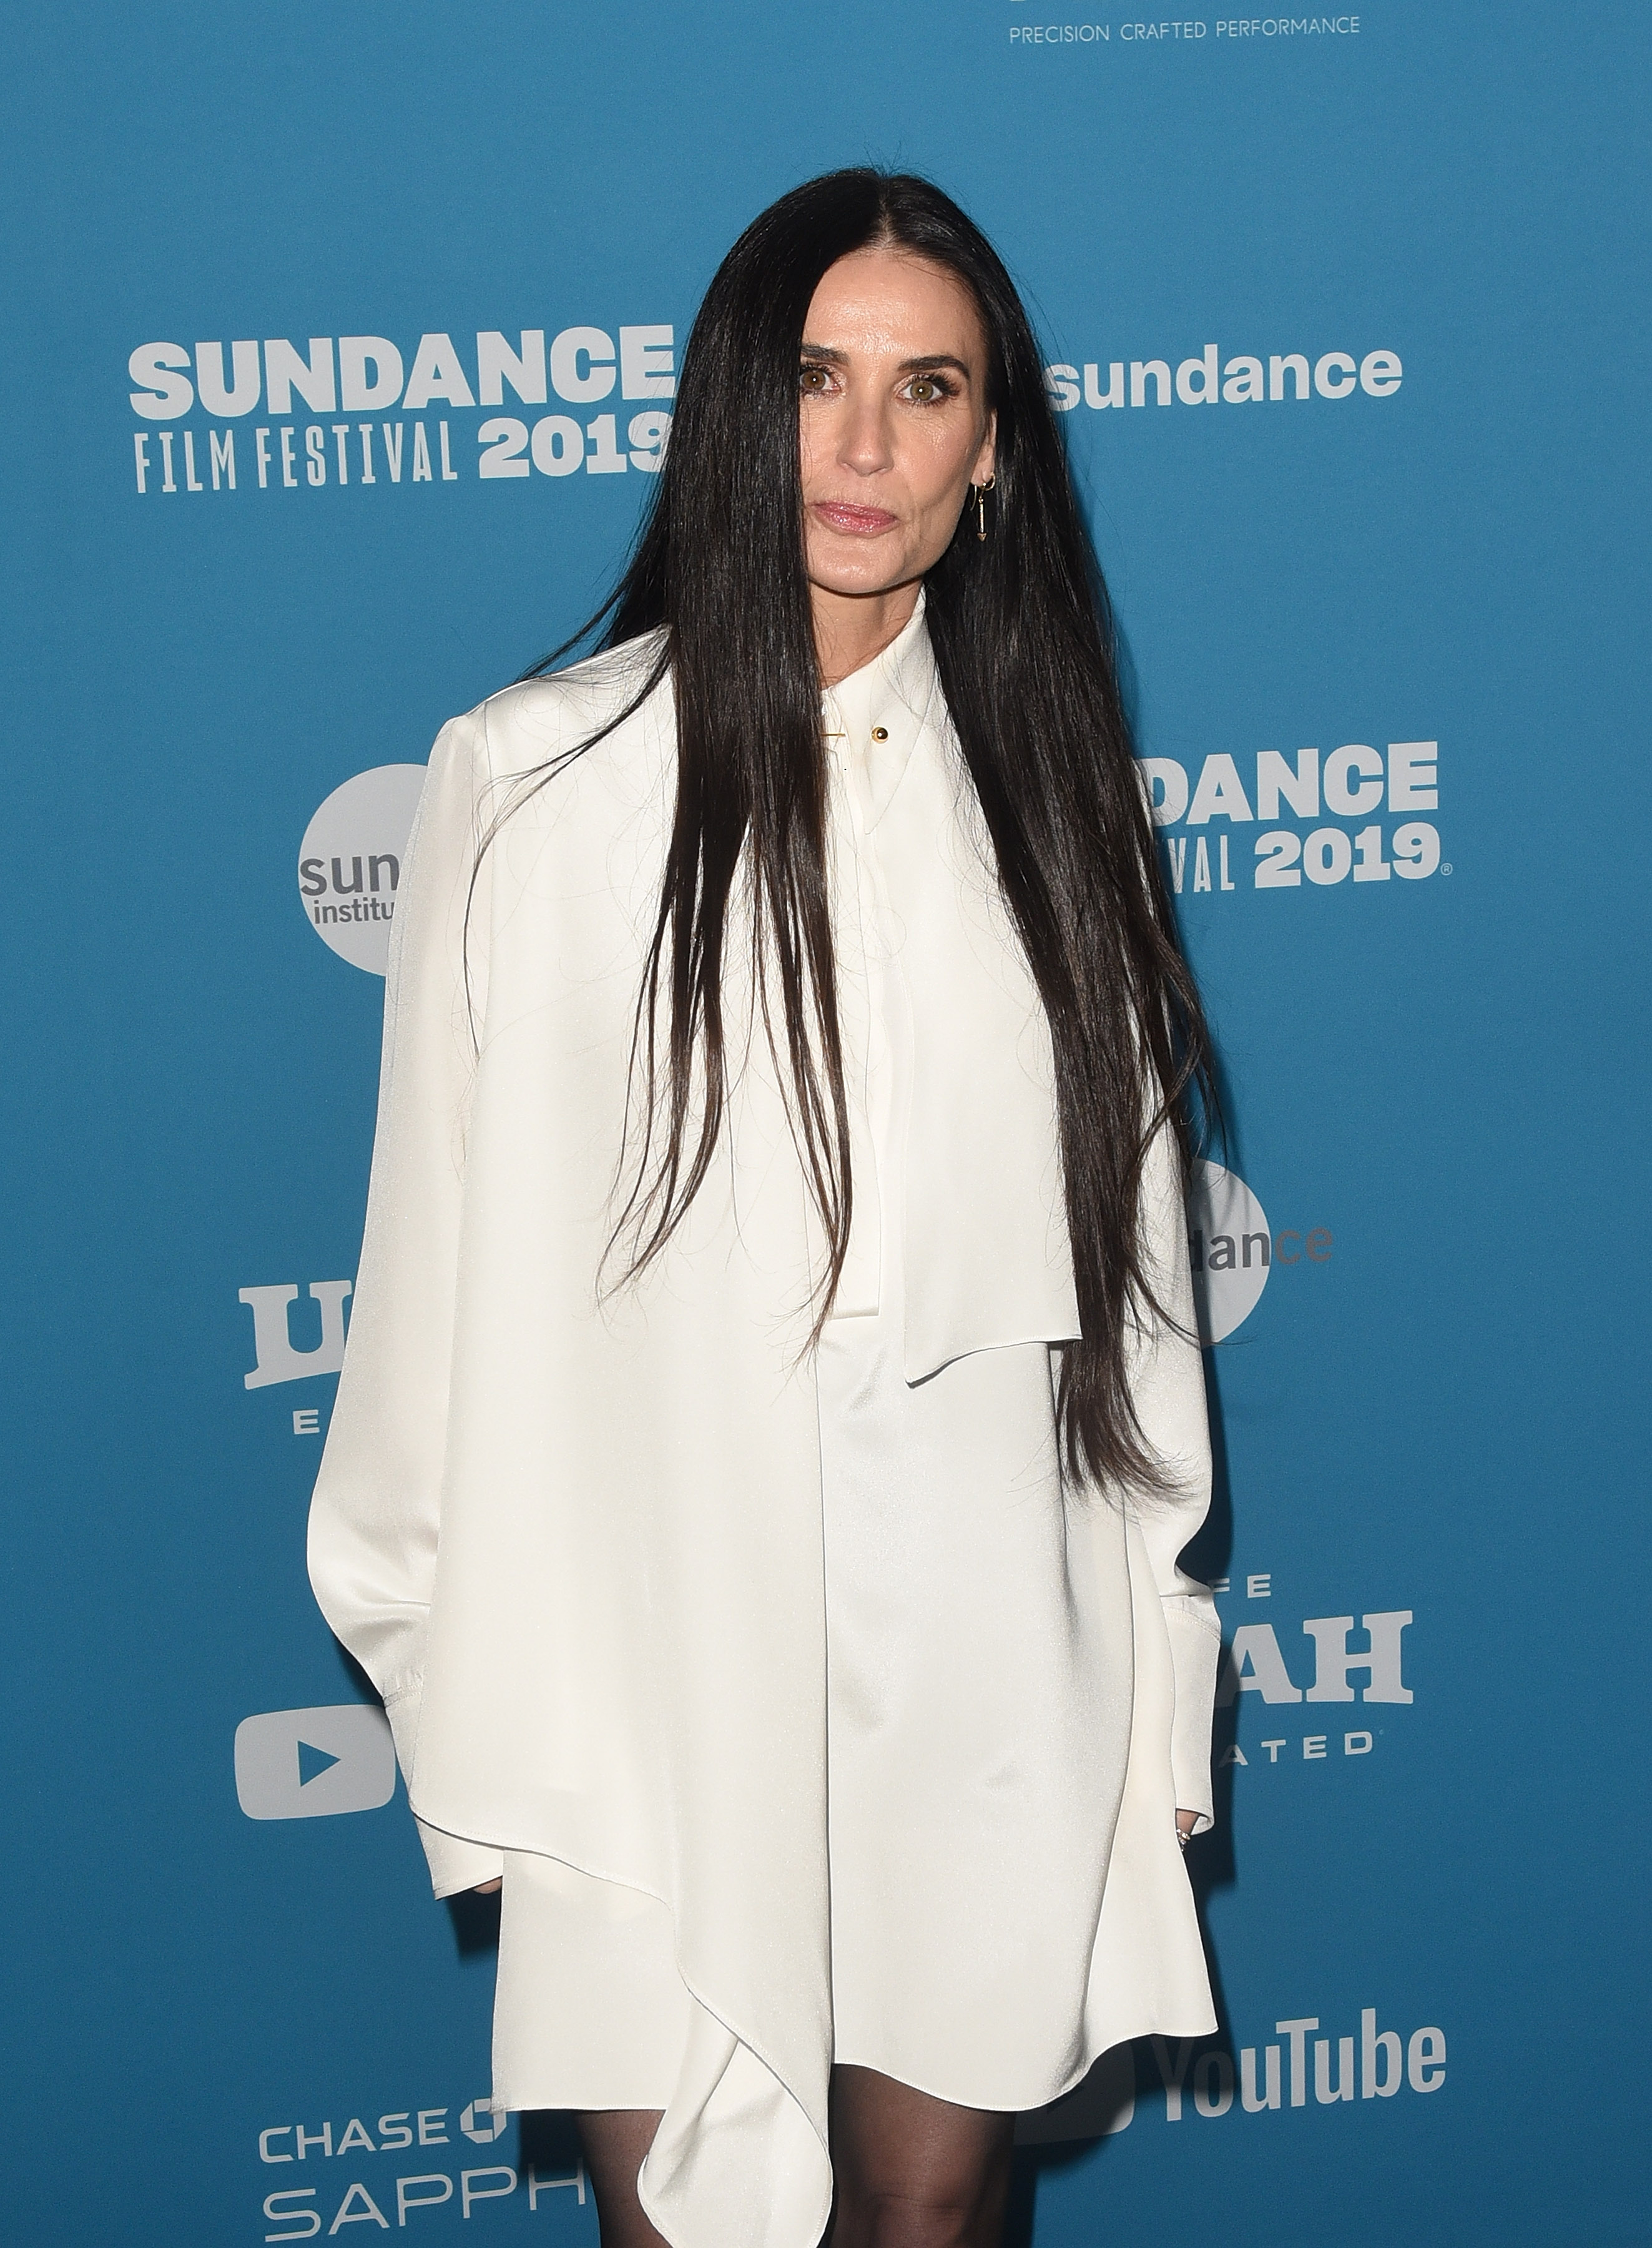 Demi Moore Reveals She Wanted to 'Leave the Pain and Shame' of Her Life During Scary Overdose